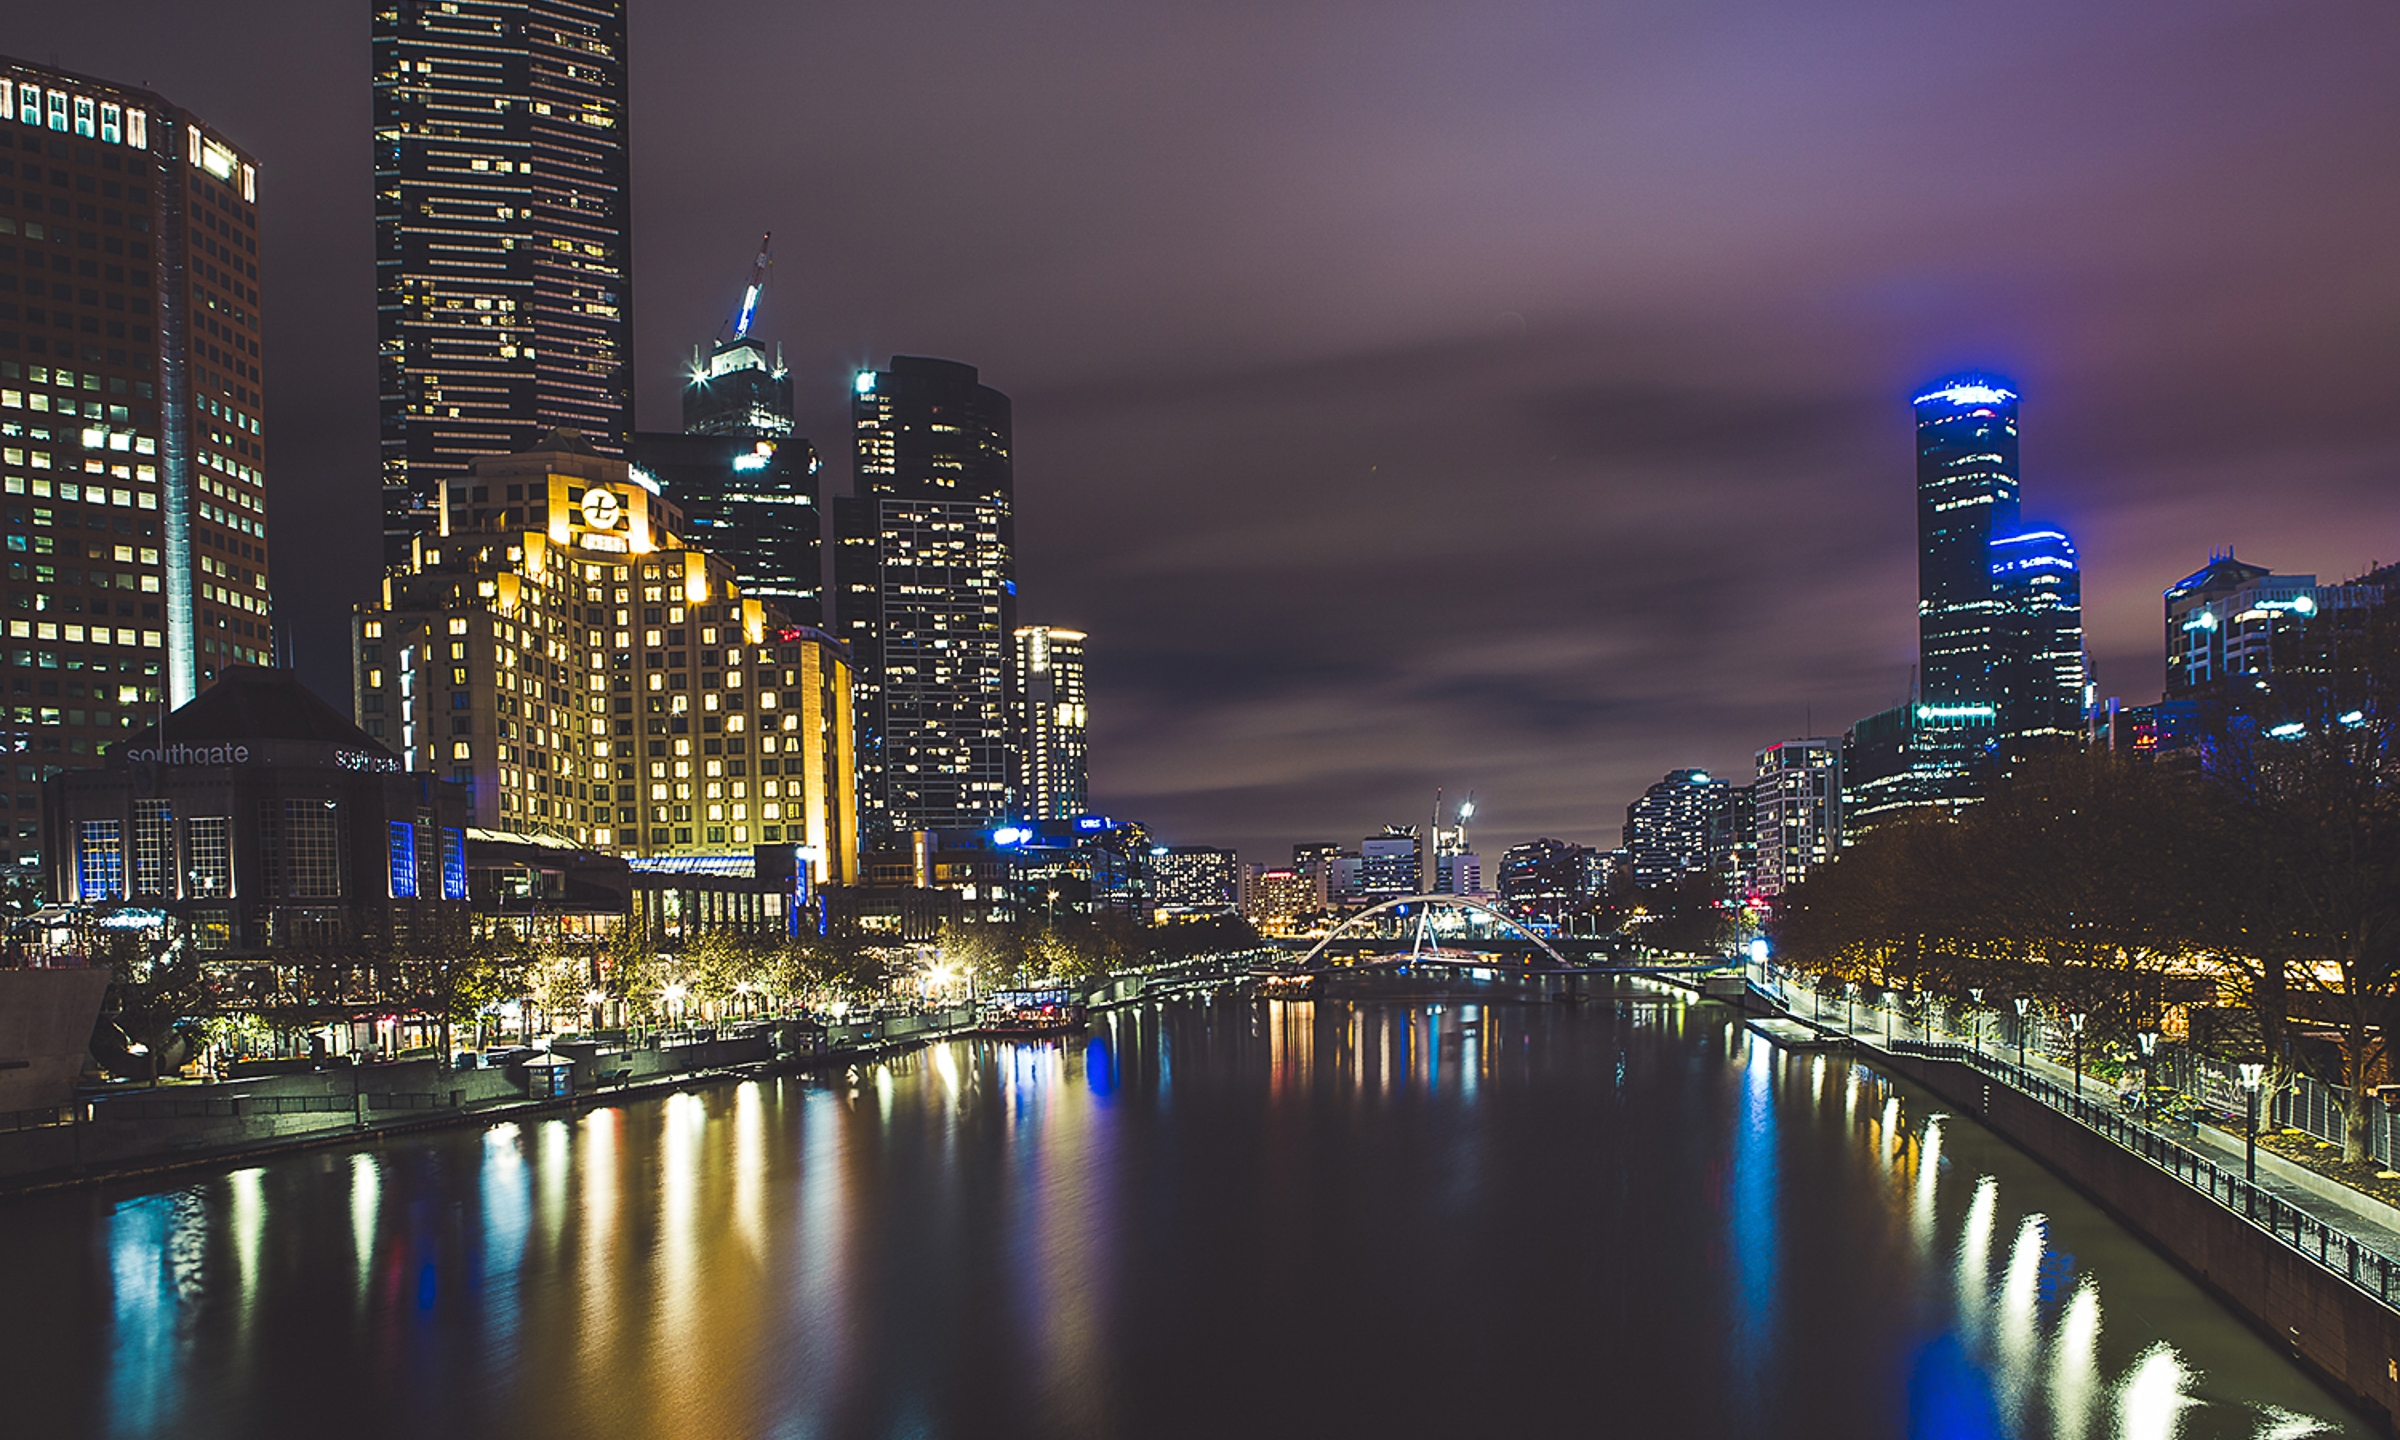 Night Photography Course - Get off auto mode and shoot in manual mode the cityscape. Control ISO, Shutter Speed & Aperture creatively. Master Composition and walk away with the confidence to shoot in low light.Price: $99.Approx. 2.5 hours